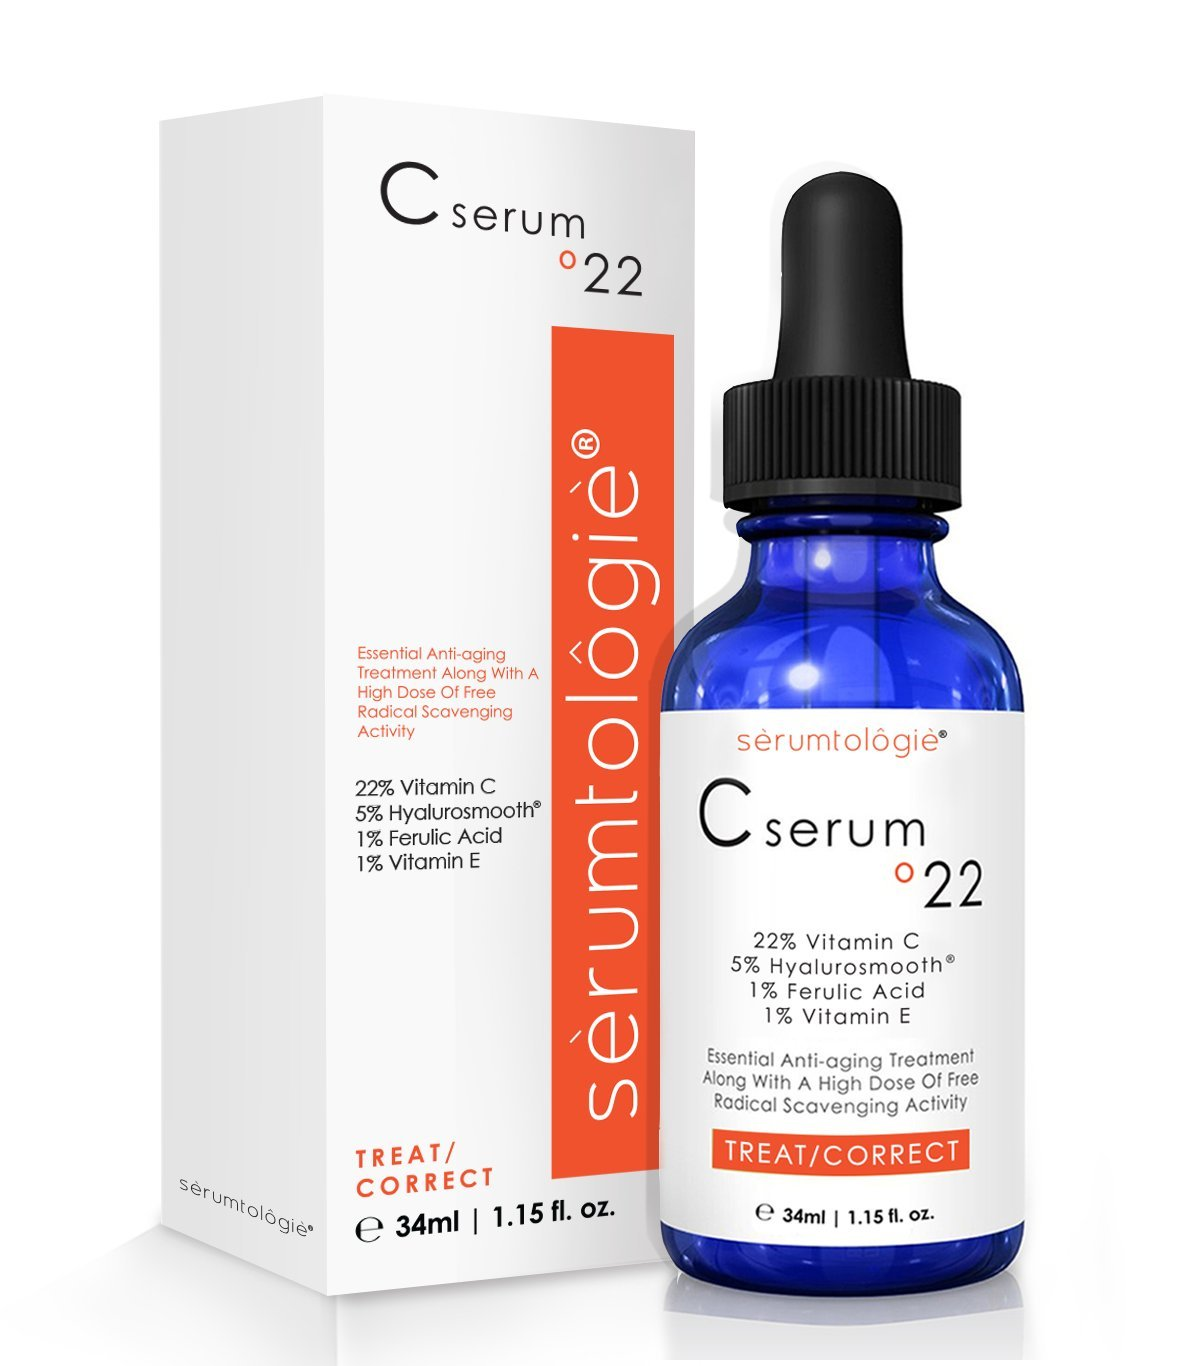 vitamin c serum 22 by serumtologie anti aging moisturizer oz new cad. Black Bedroom Furniture Sets. Home Design Ideas